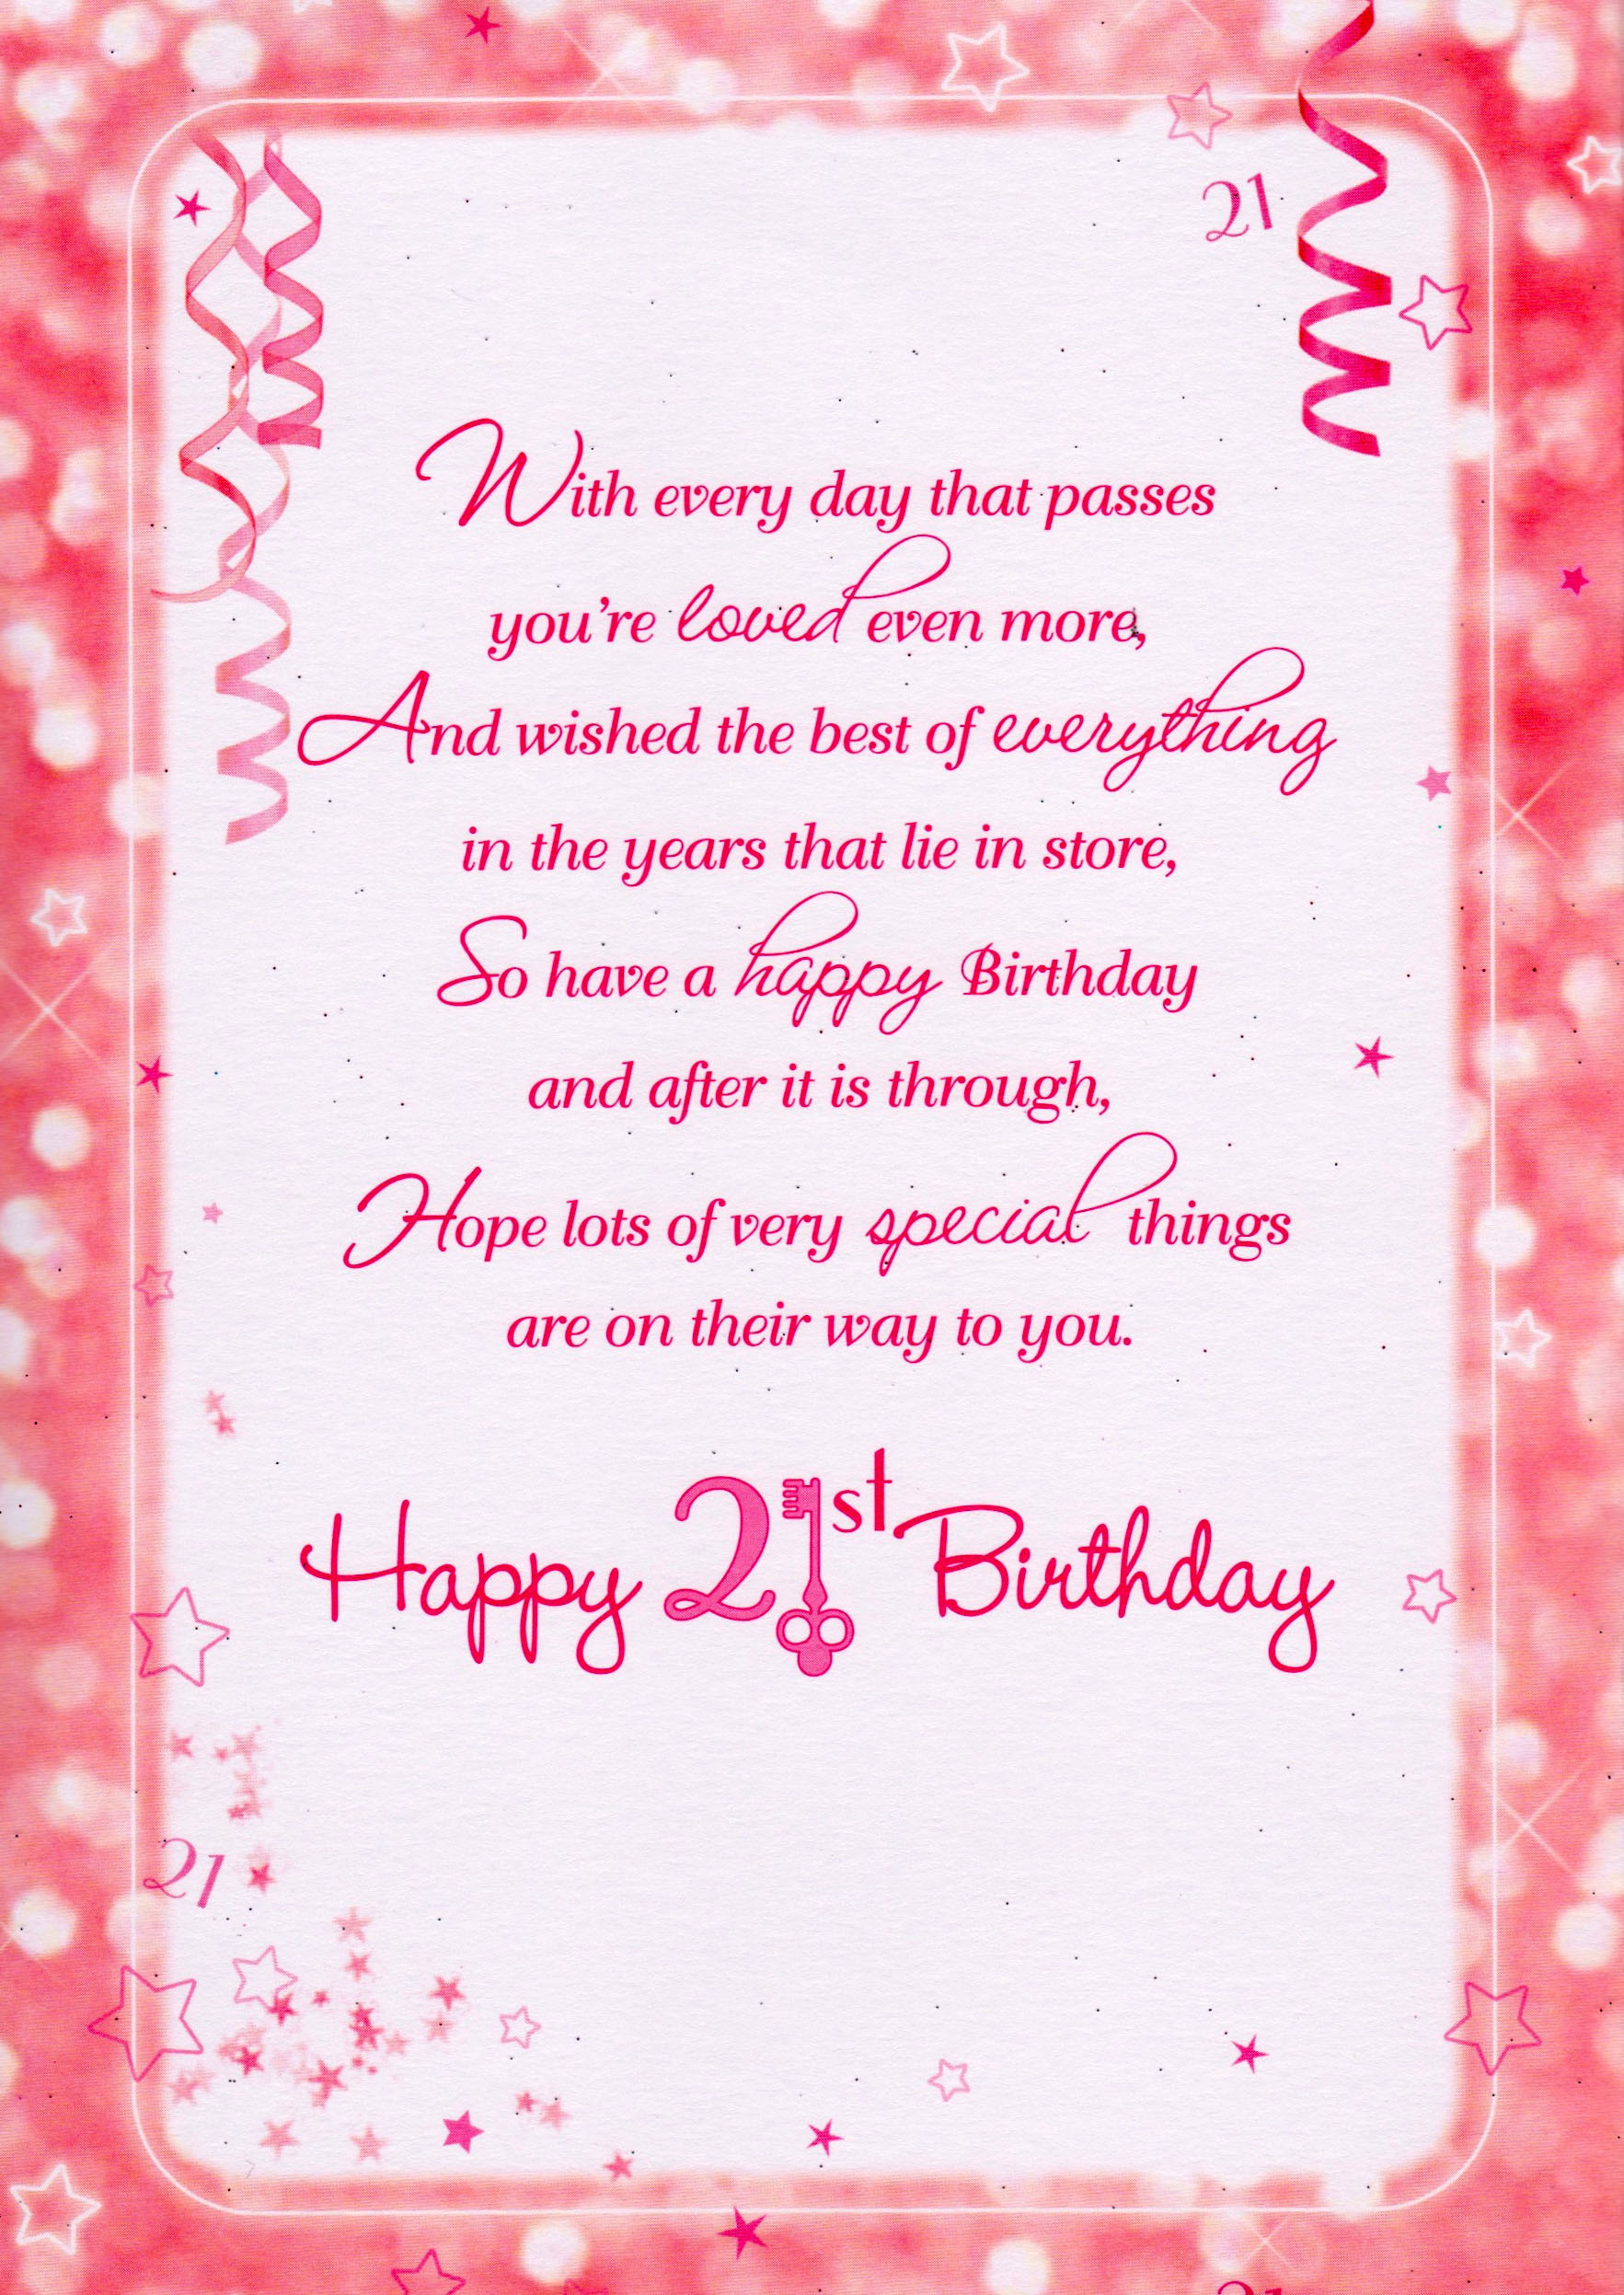 Happy 21st Birthday Wishes Messages And Cards 9 Happy Birthday